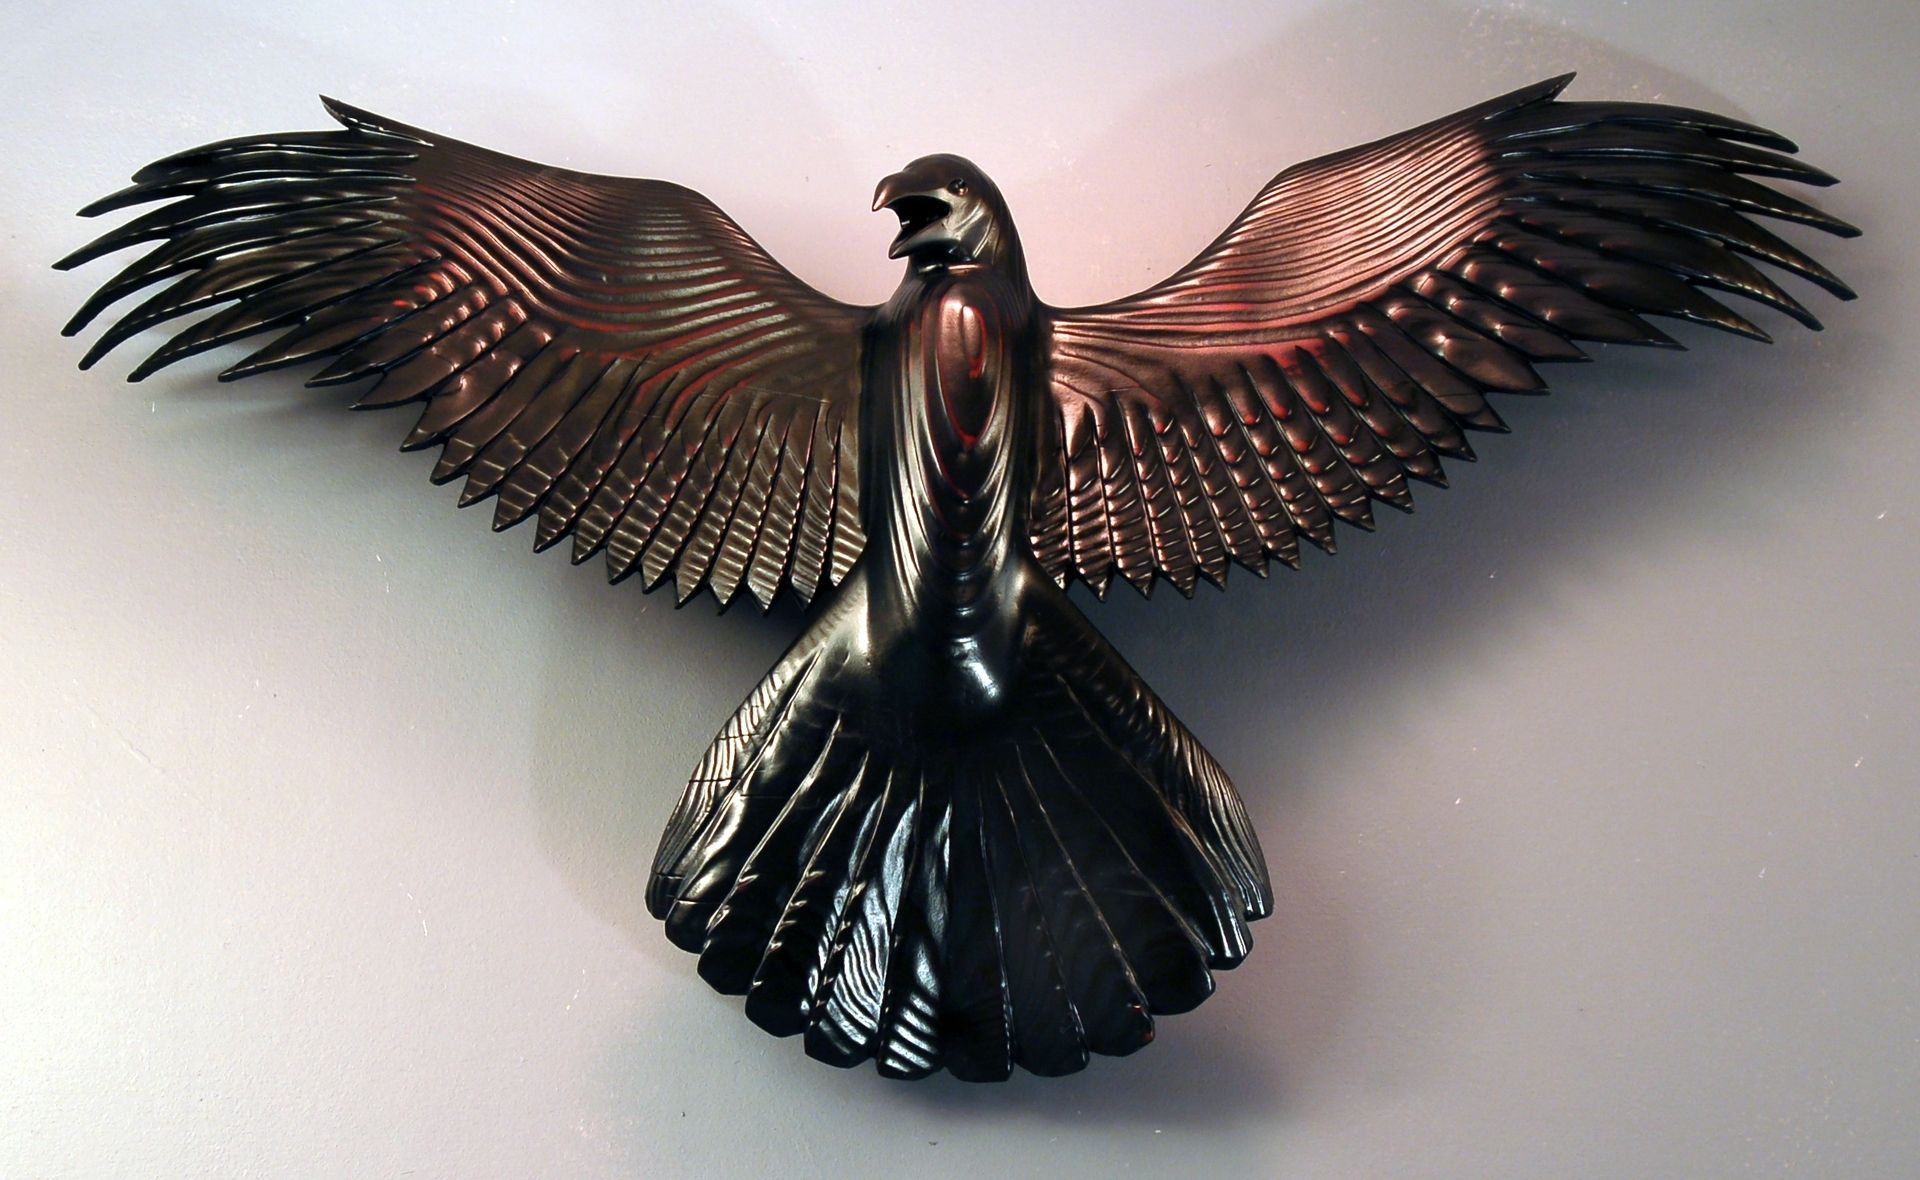 Handmade raven wood carving by jason tennant